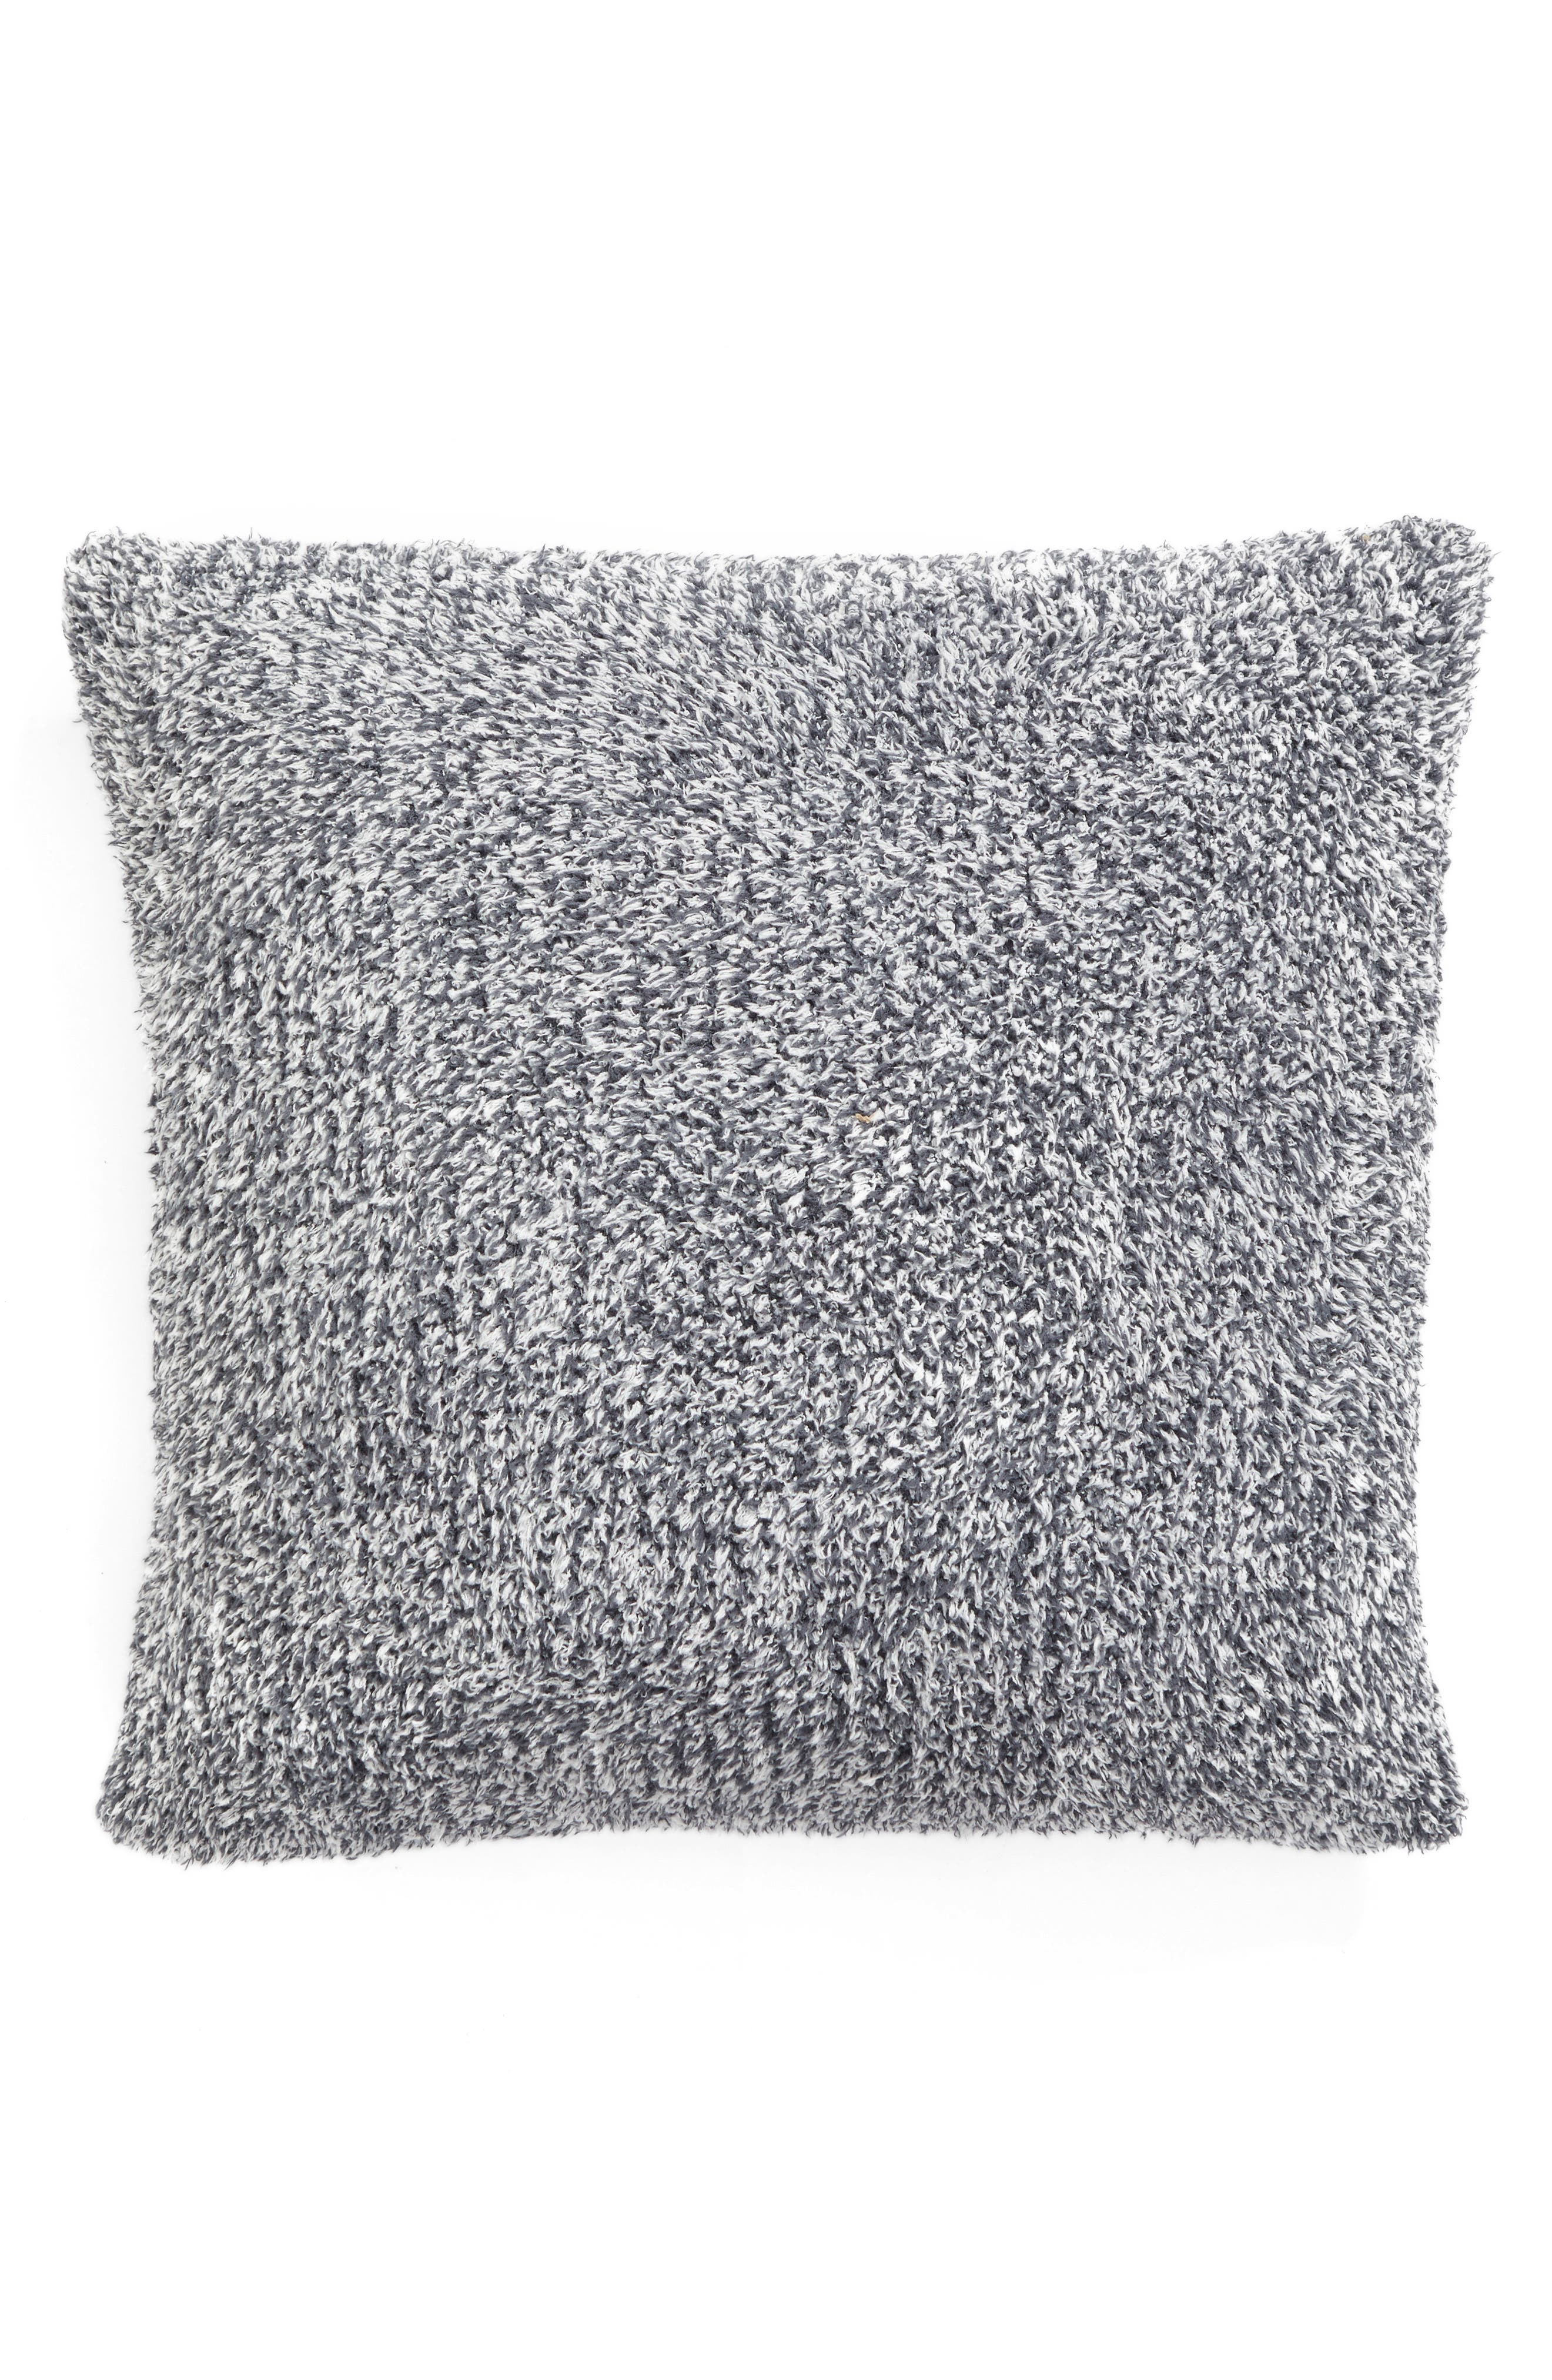 Alternate Image 1 Selected - Barefoot Dreams® Cozychic® Heathered Accent Pillow